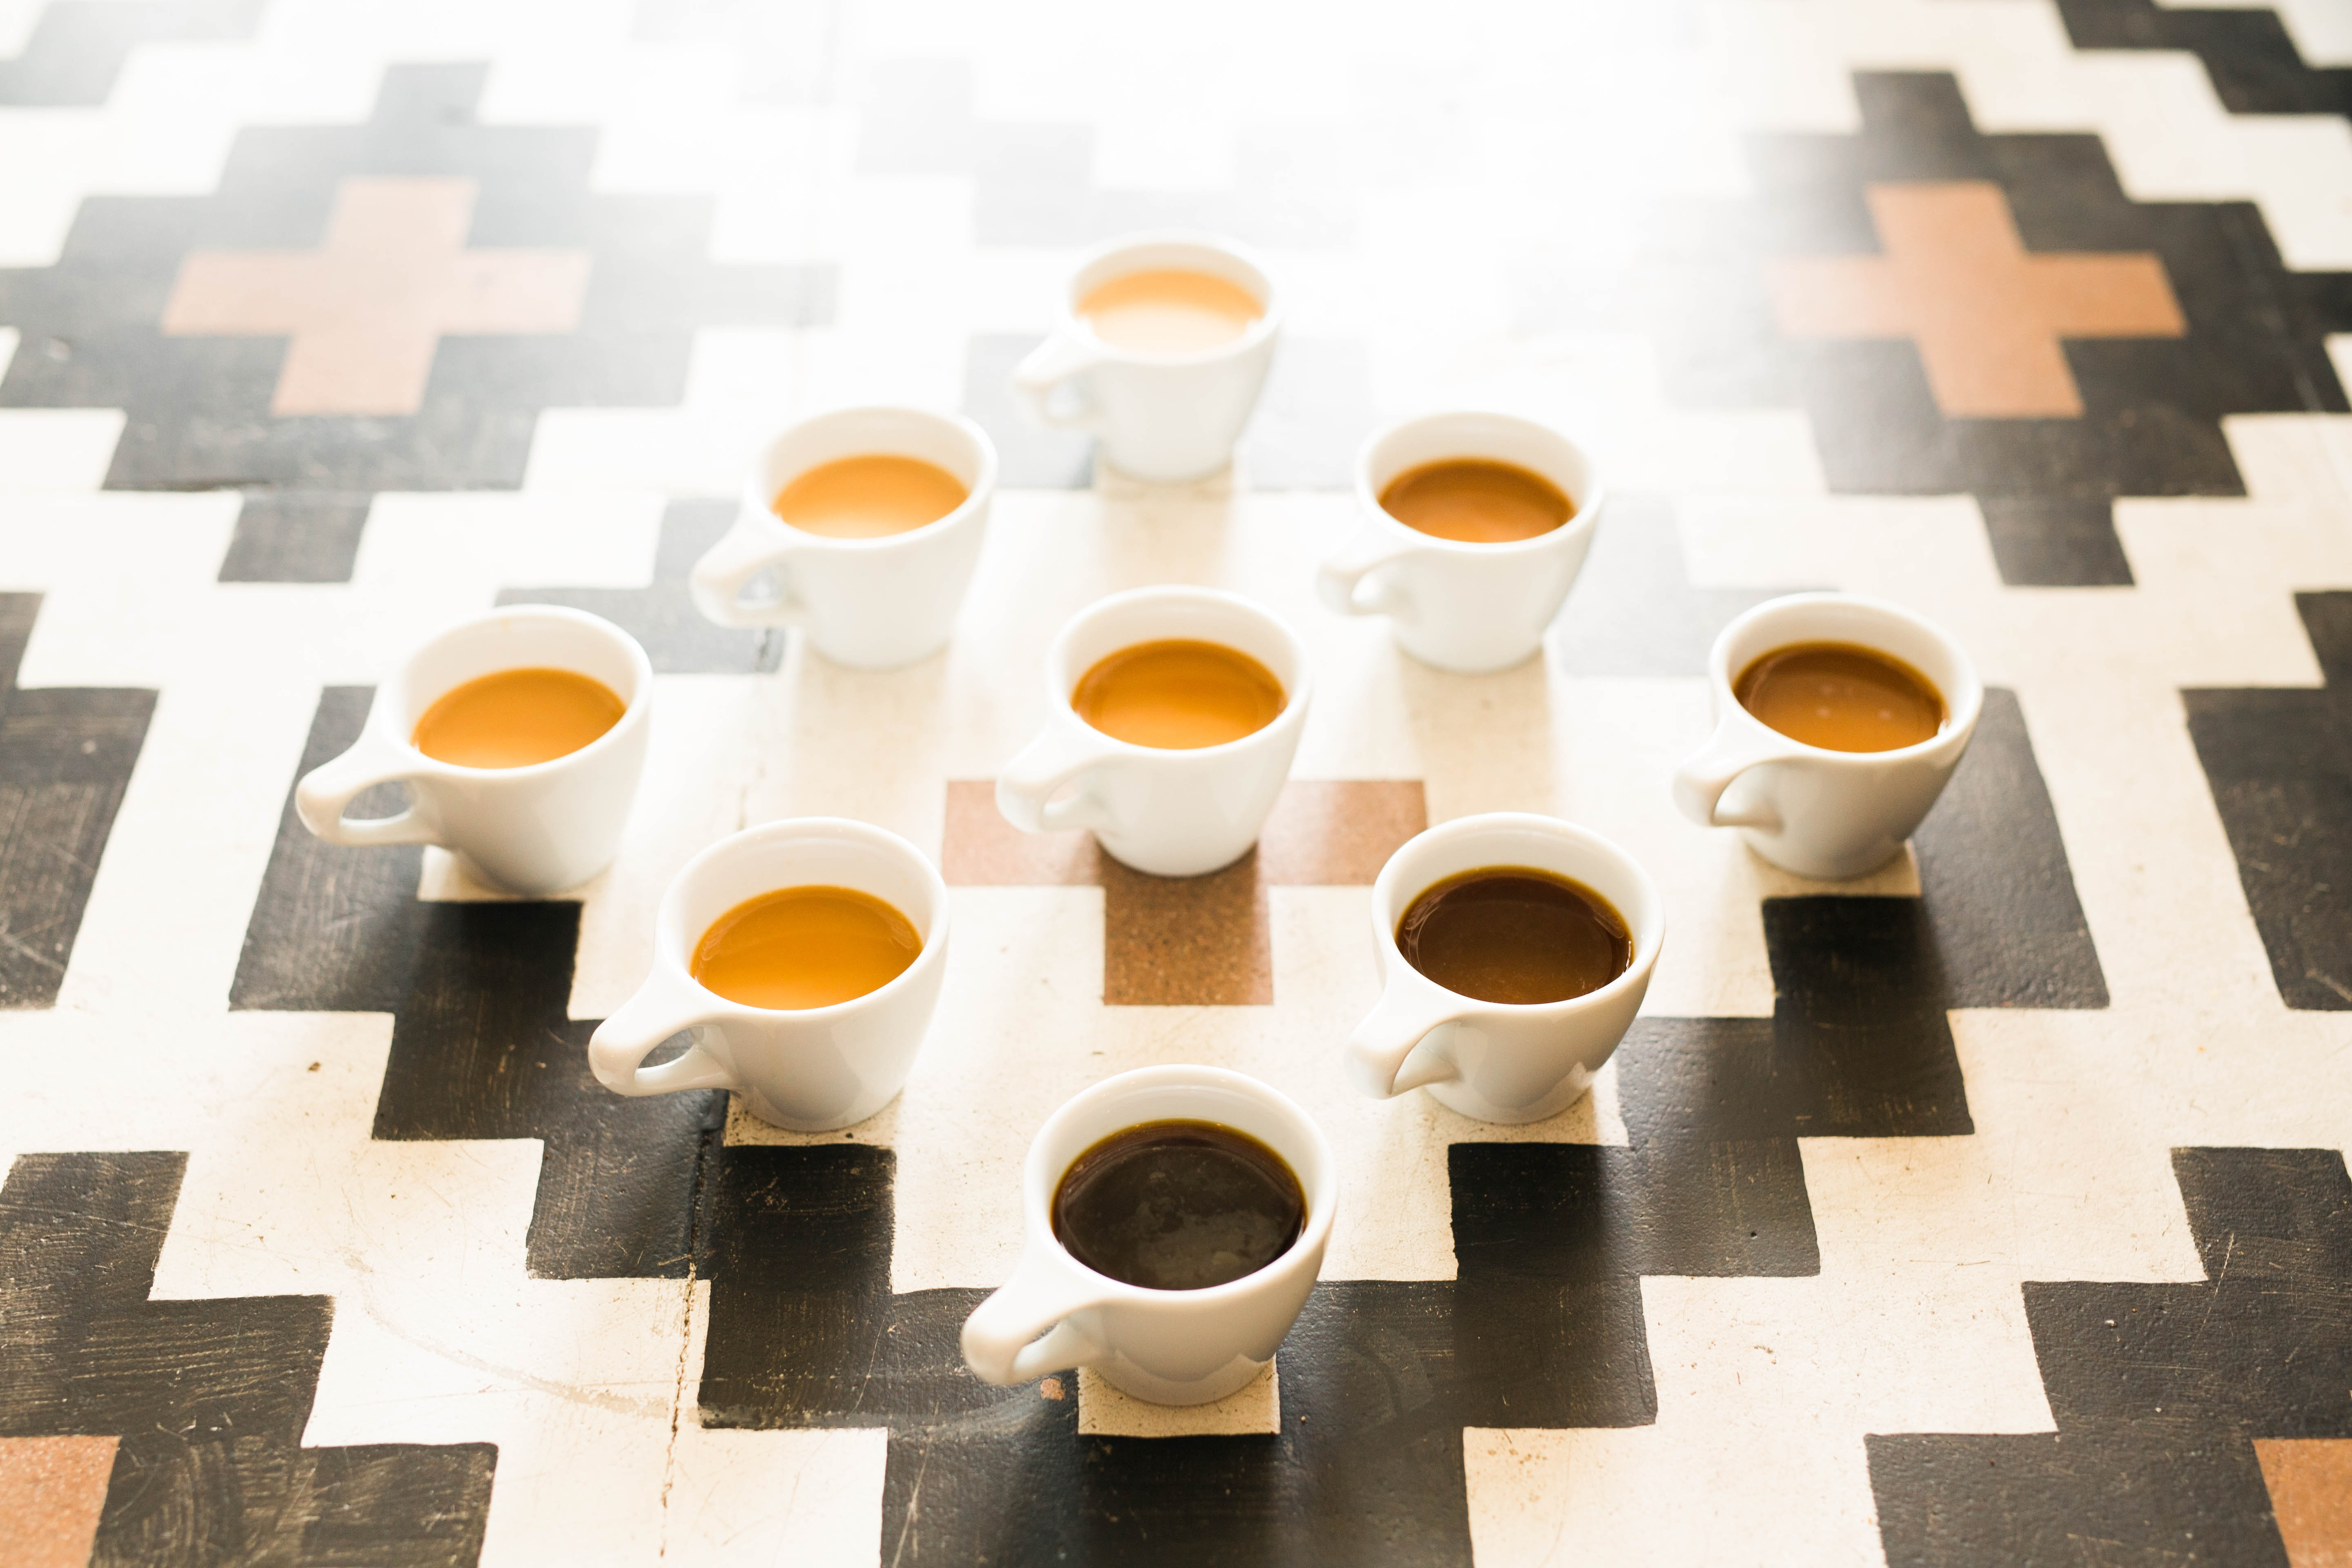 An arrangement of different shades of coffee.